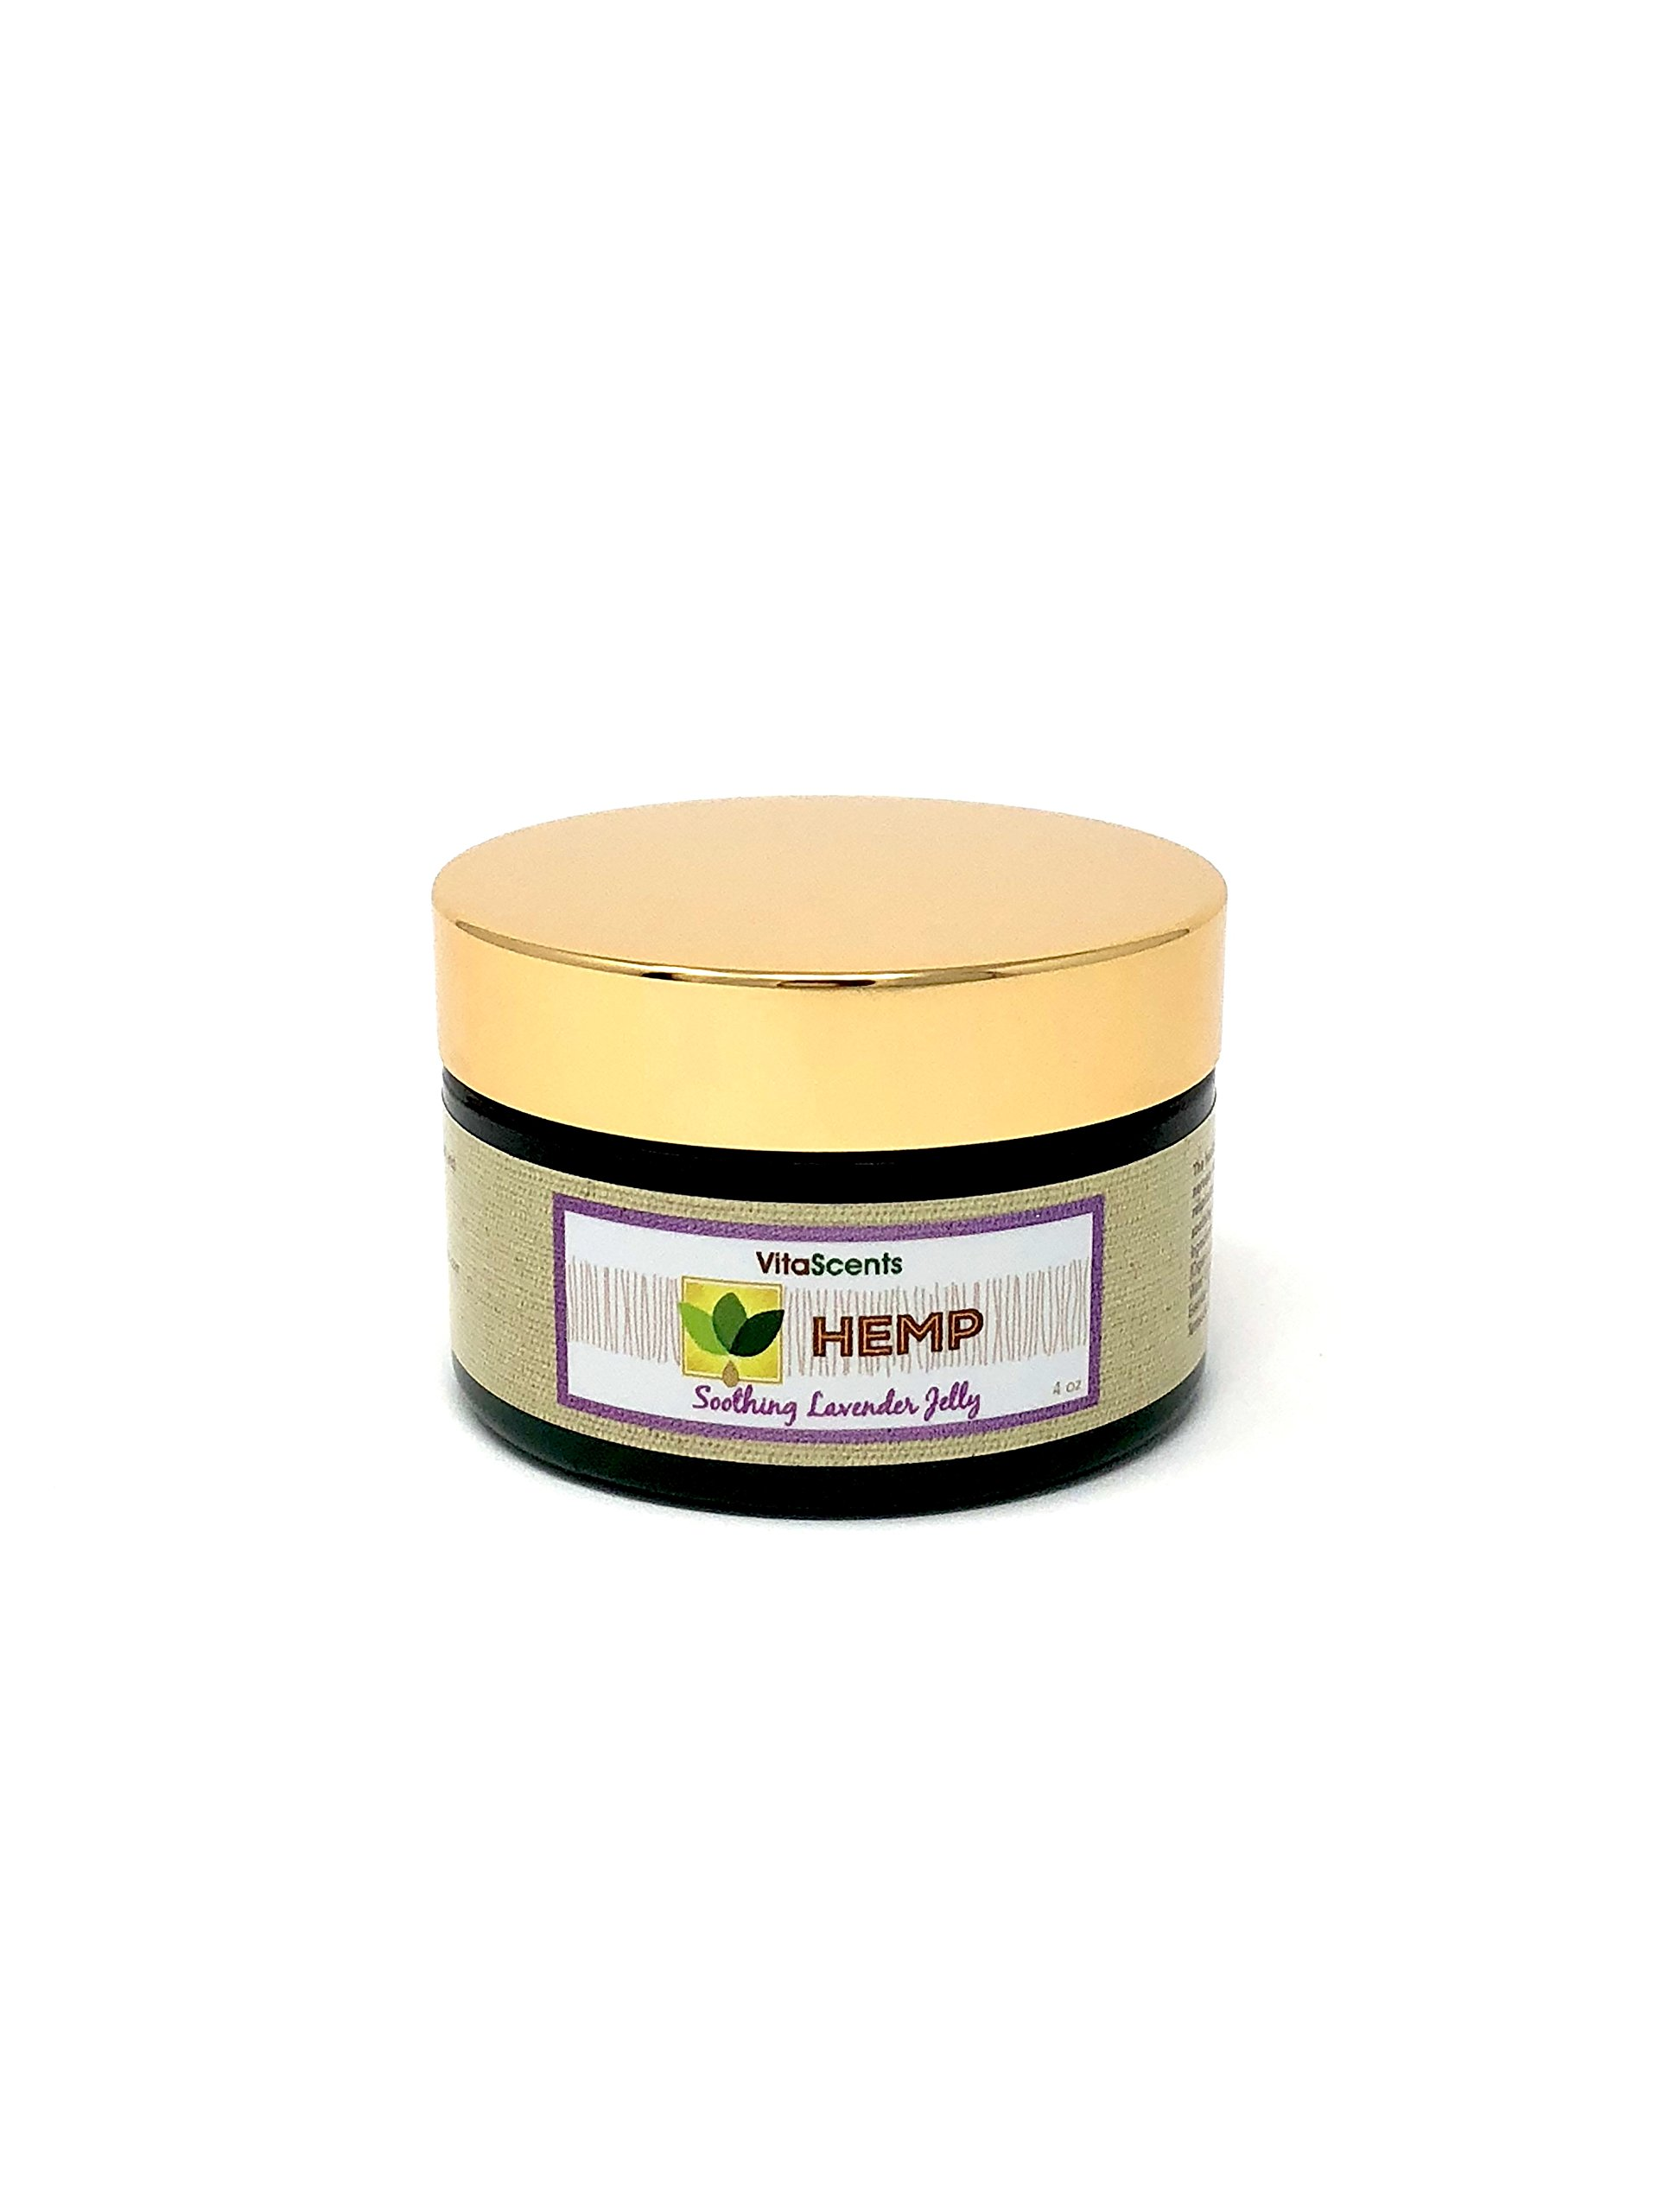 VitaScents Hemp Soothing Lavender Jelly for Muscular Pain Relief, 4 oz